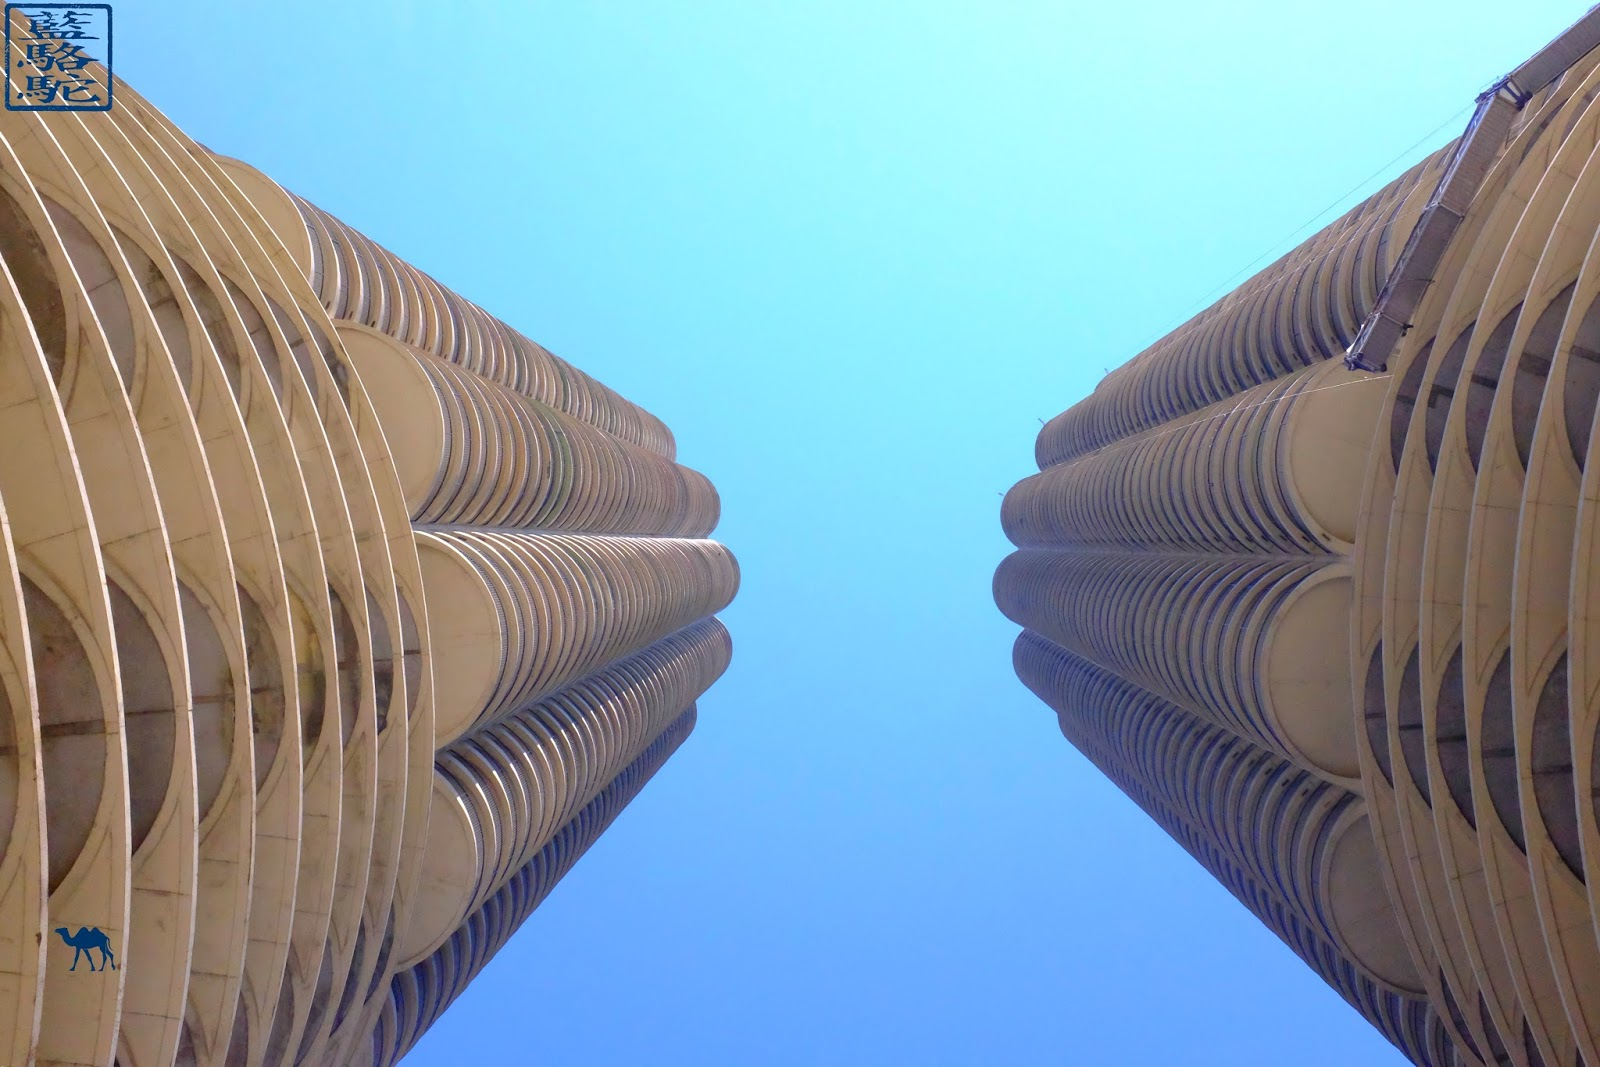 Le Chameau Bleu - Marina City de Bertrand Goldberg